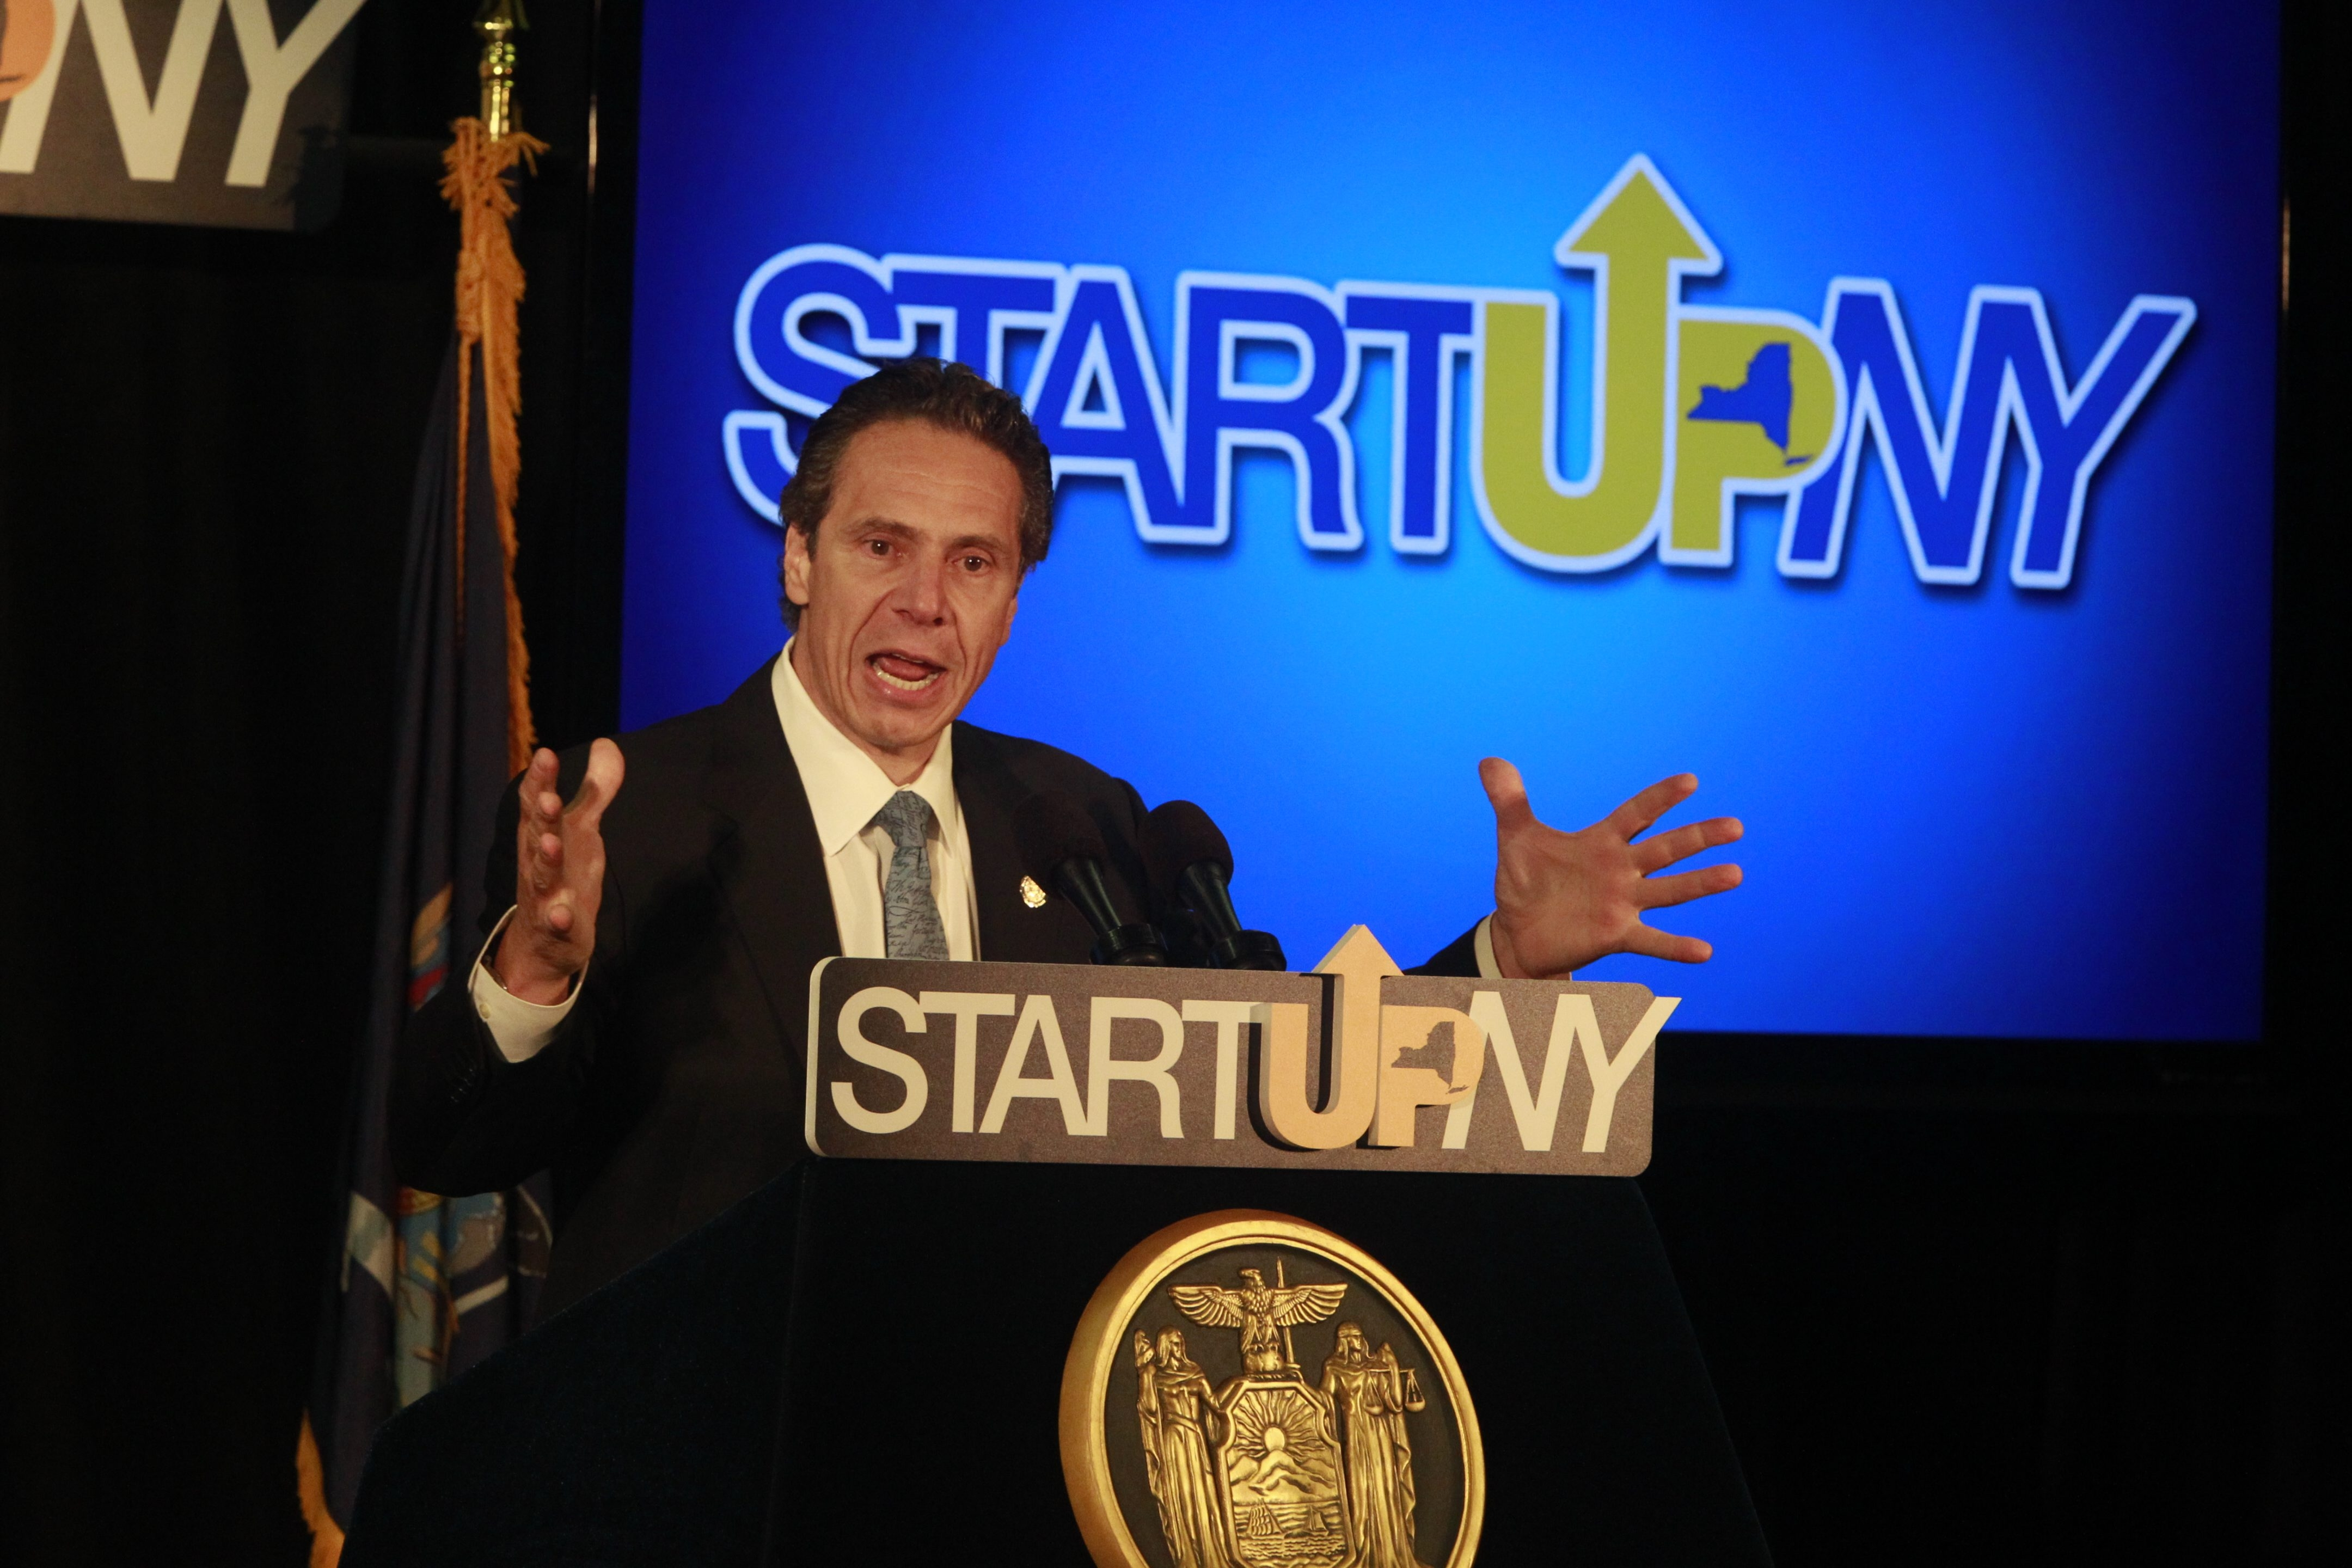 One of Gov. Andrew Cuomo's achievements is the Start-Up NY program. During a July stop in Buffalo he announced that eight local companies have been accepted into the program and are expected to create 659 jobs. (Buffalo News file photo)